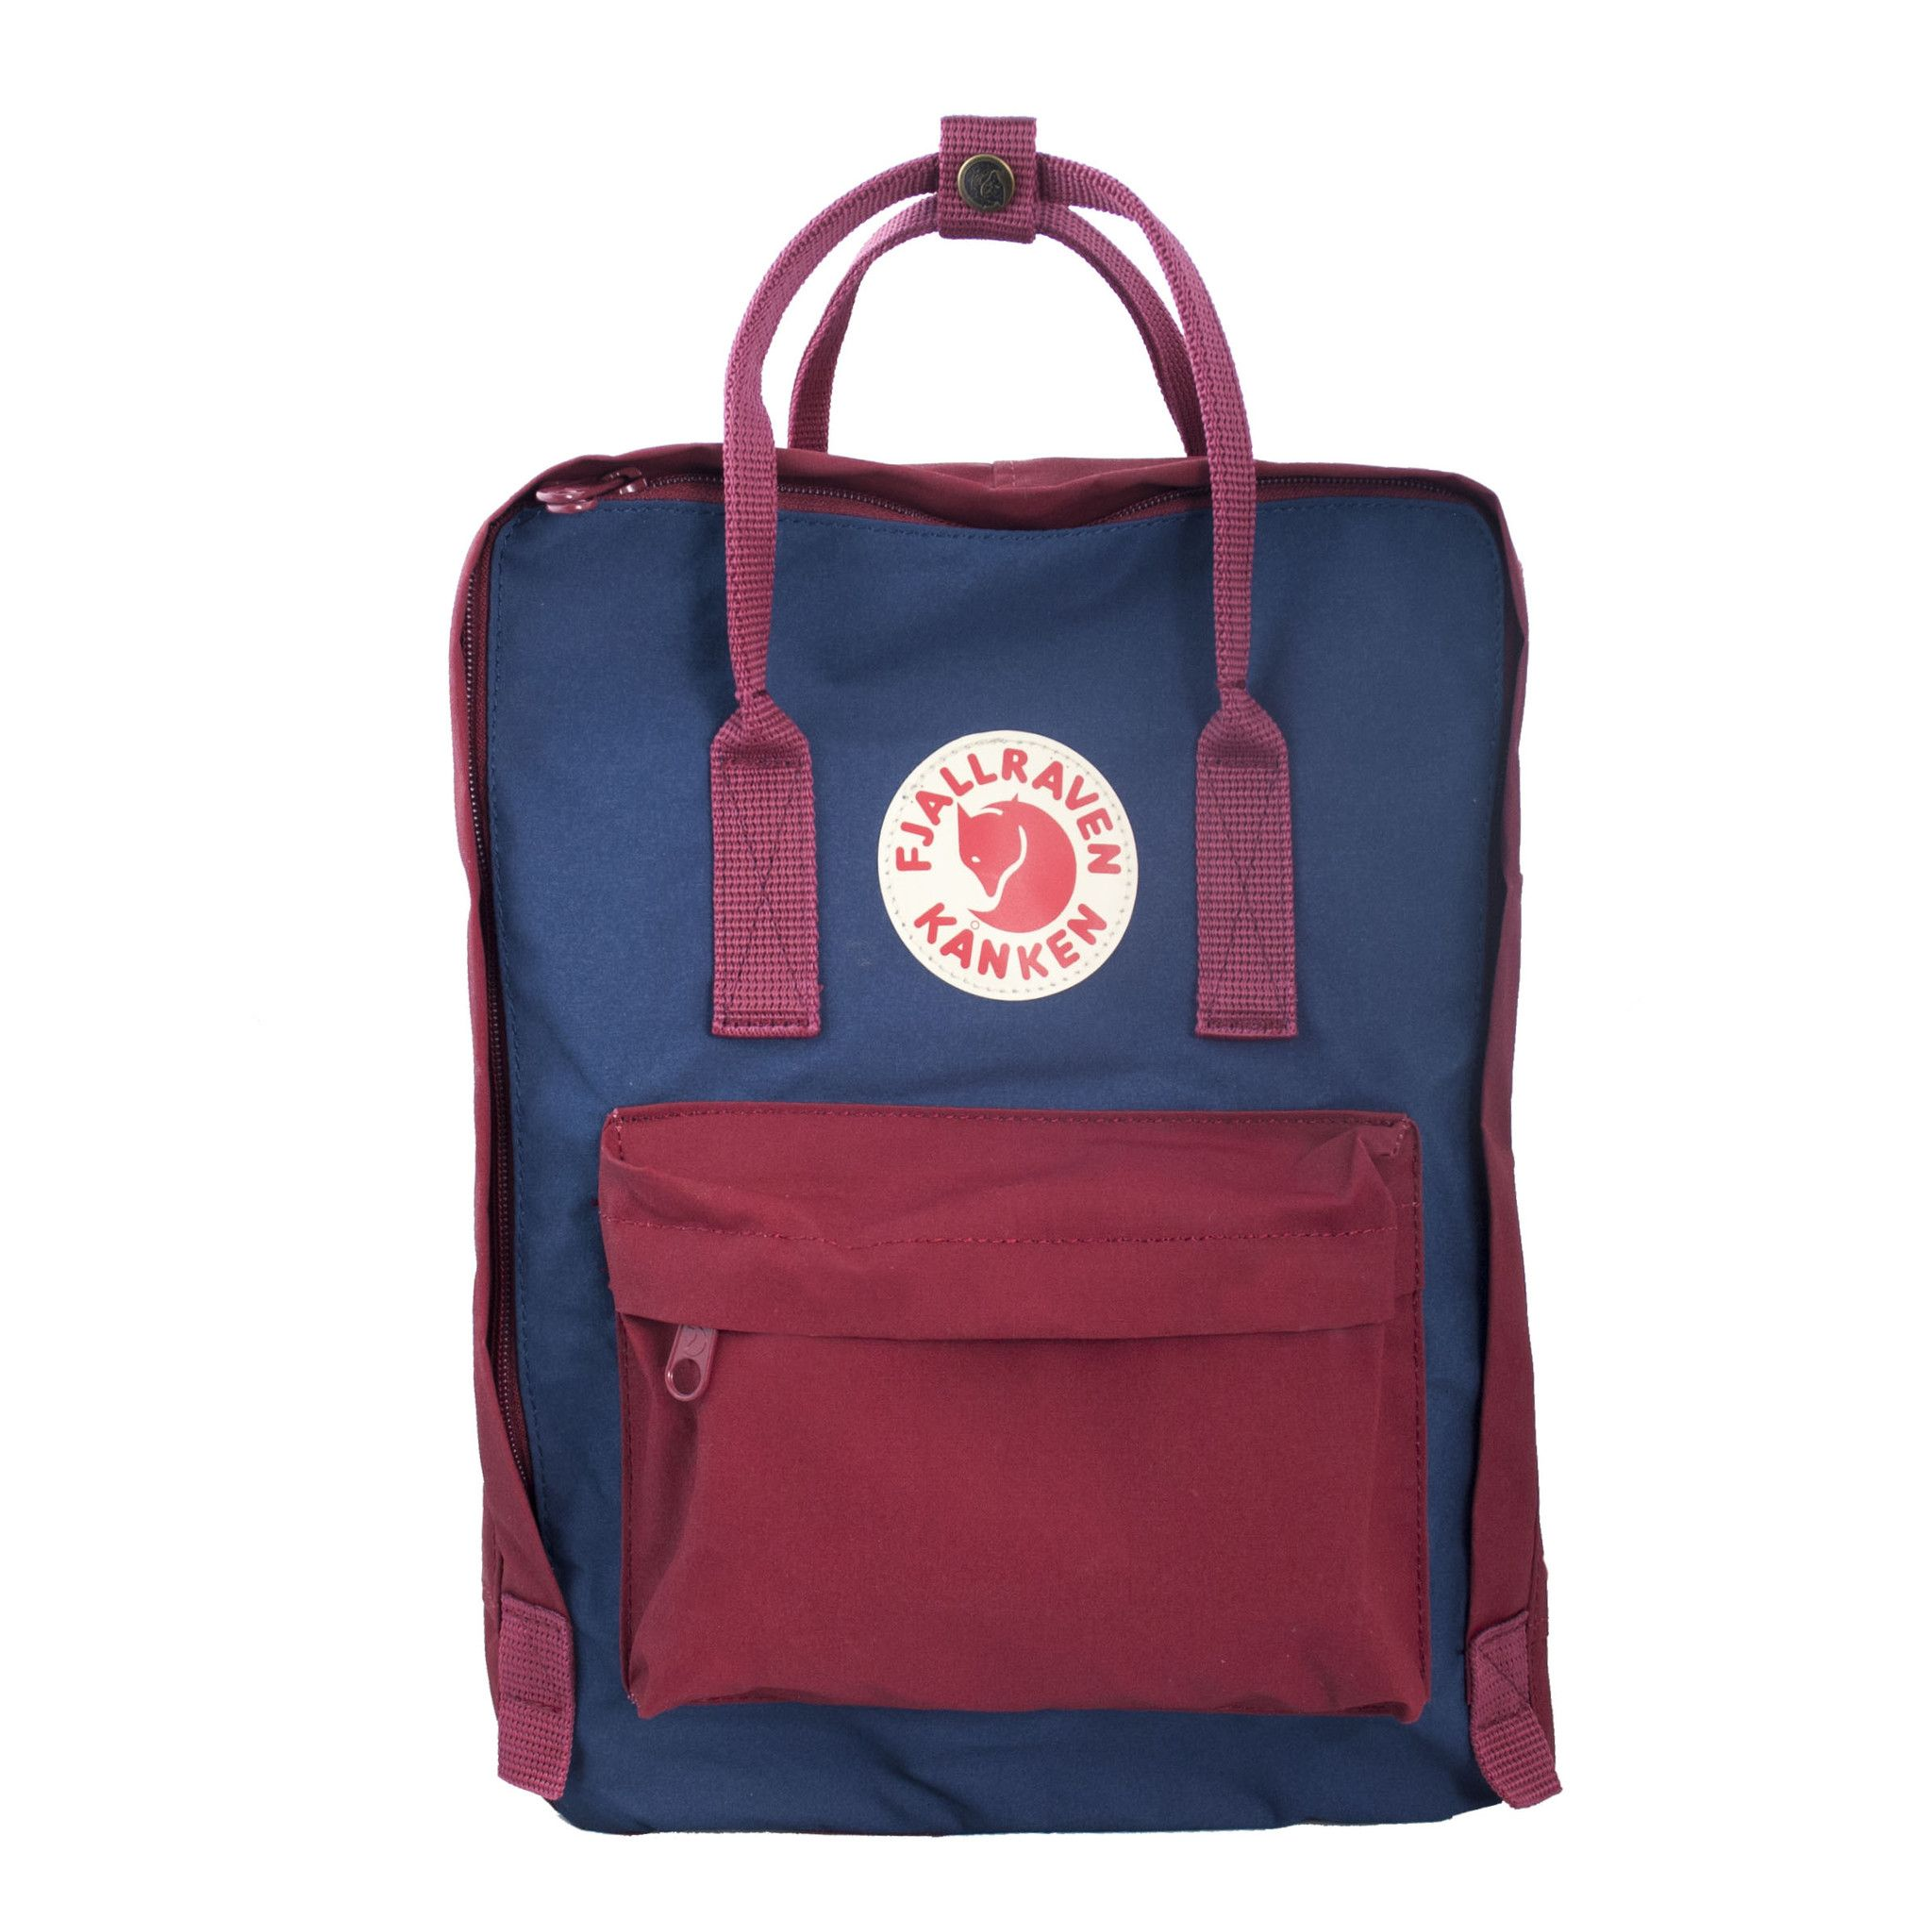 ox red and white kanken classic